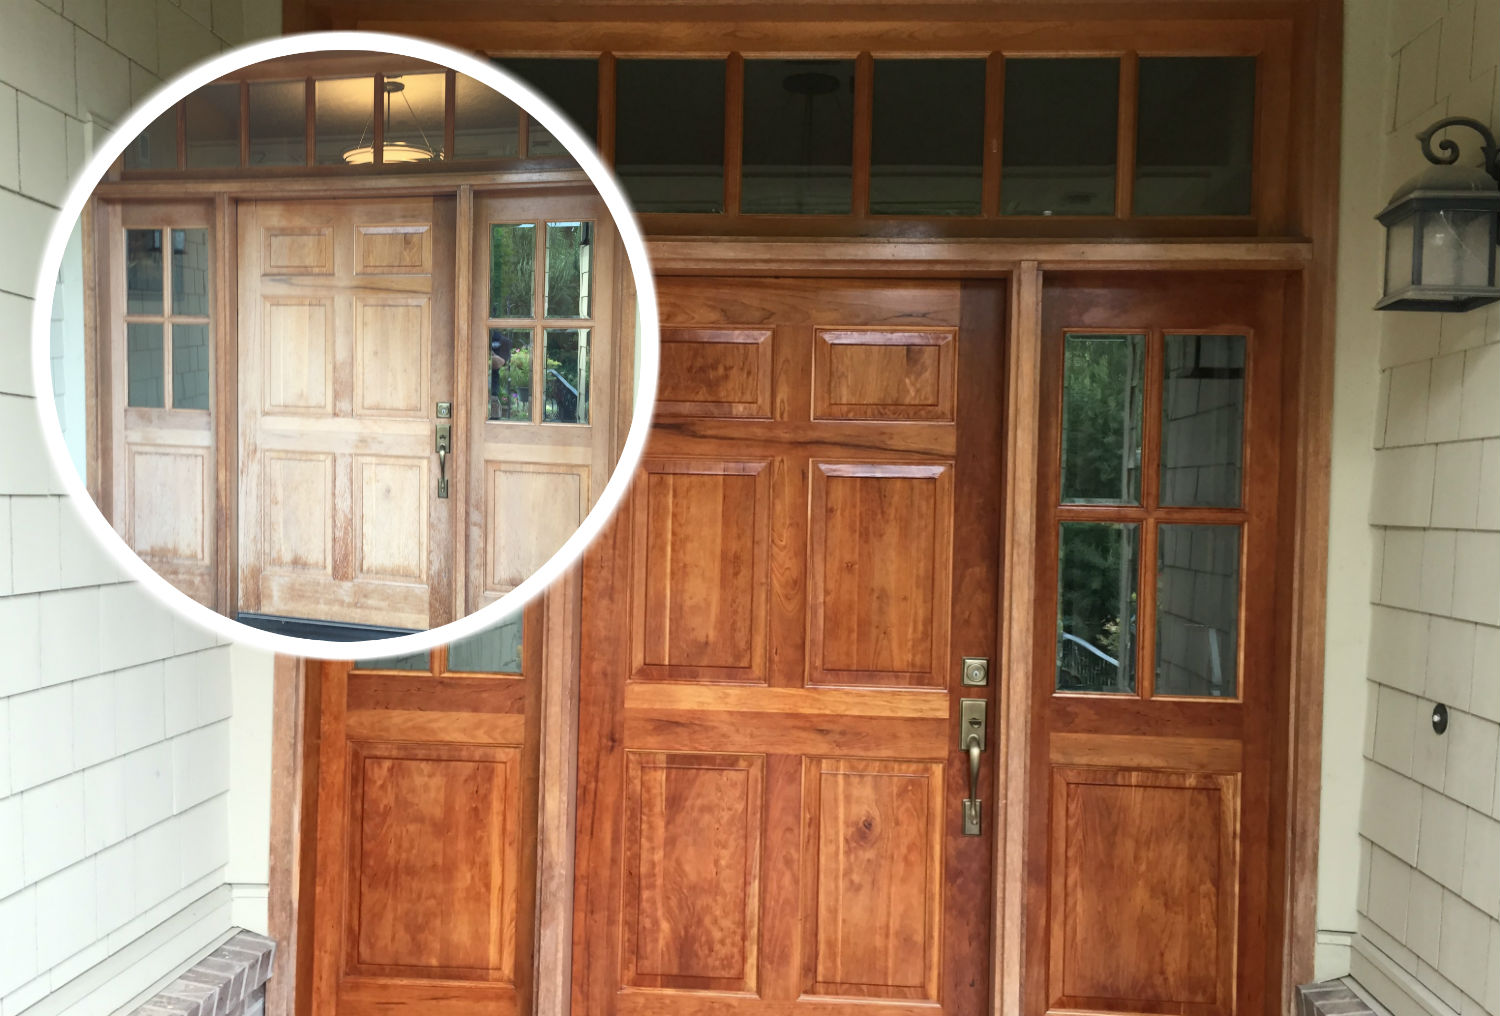 Wood Restoration Services - Why buy new when when you can restore?